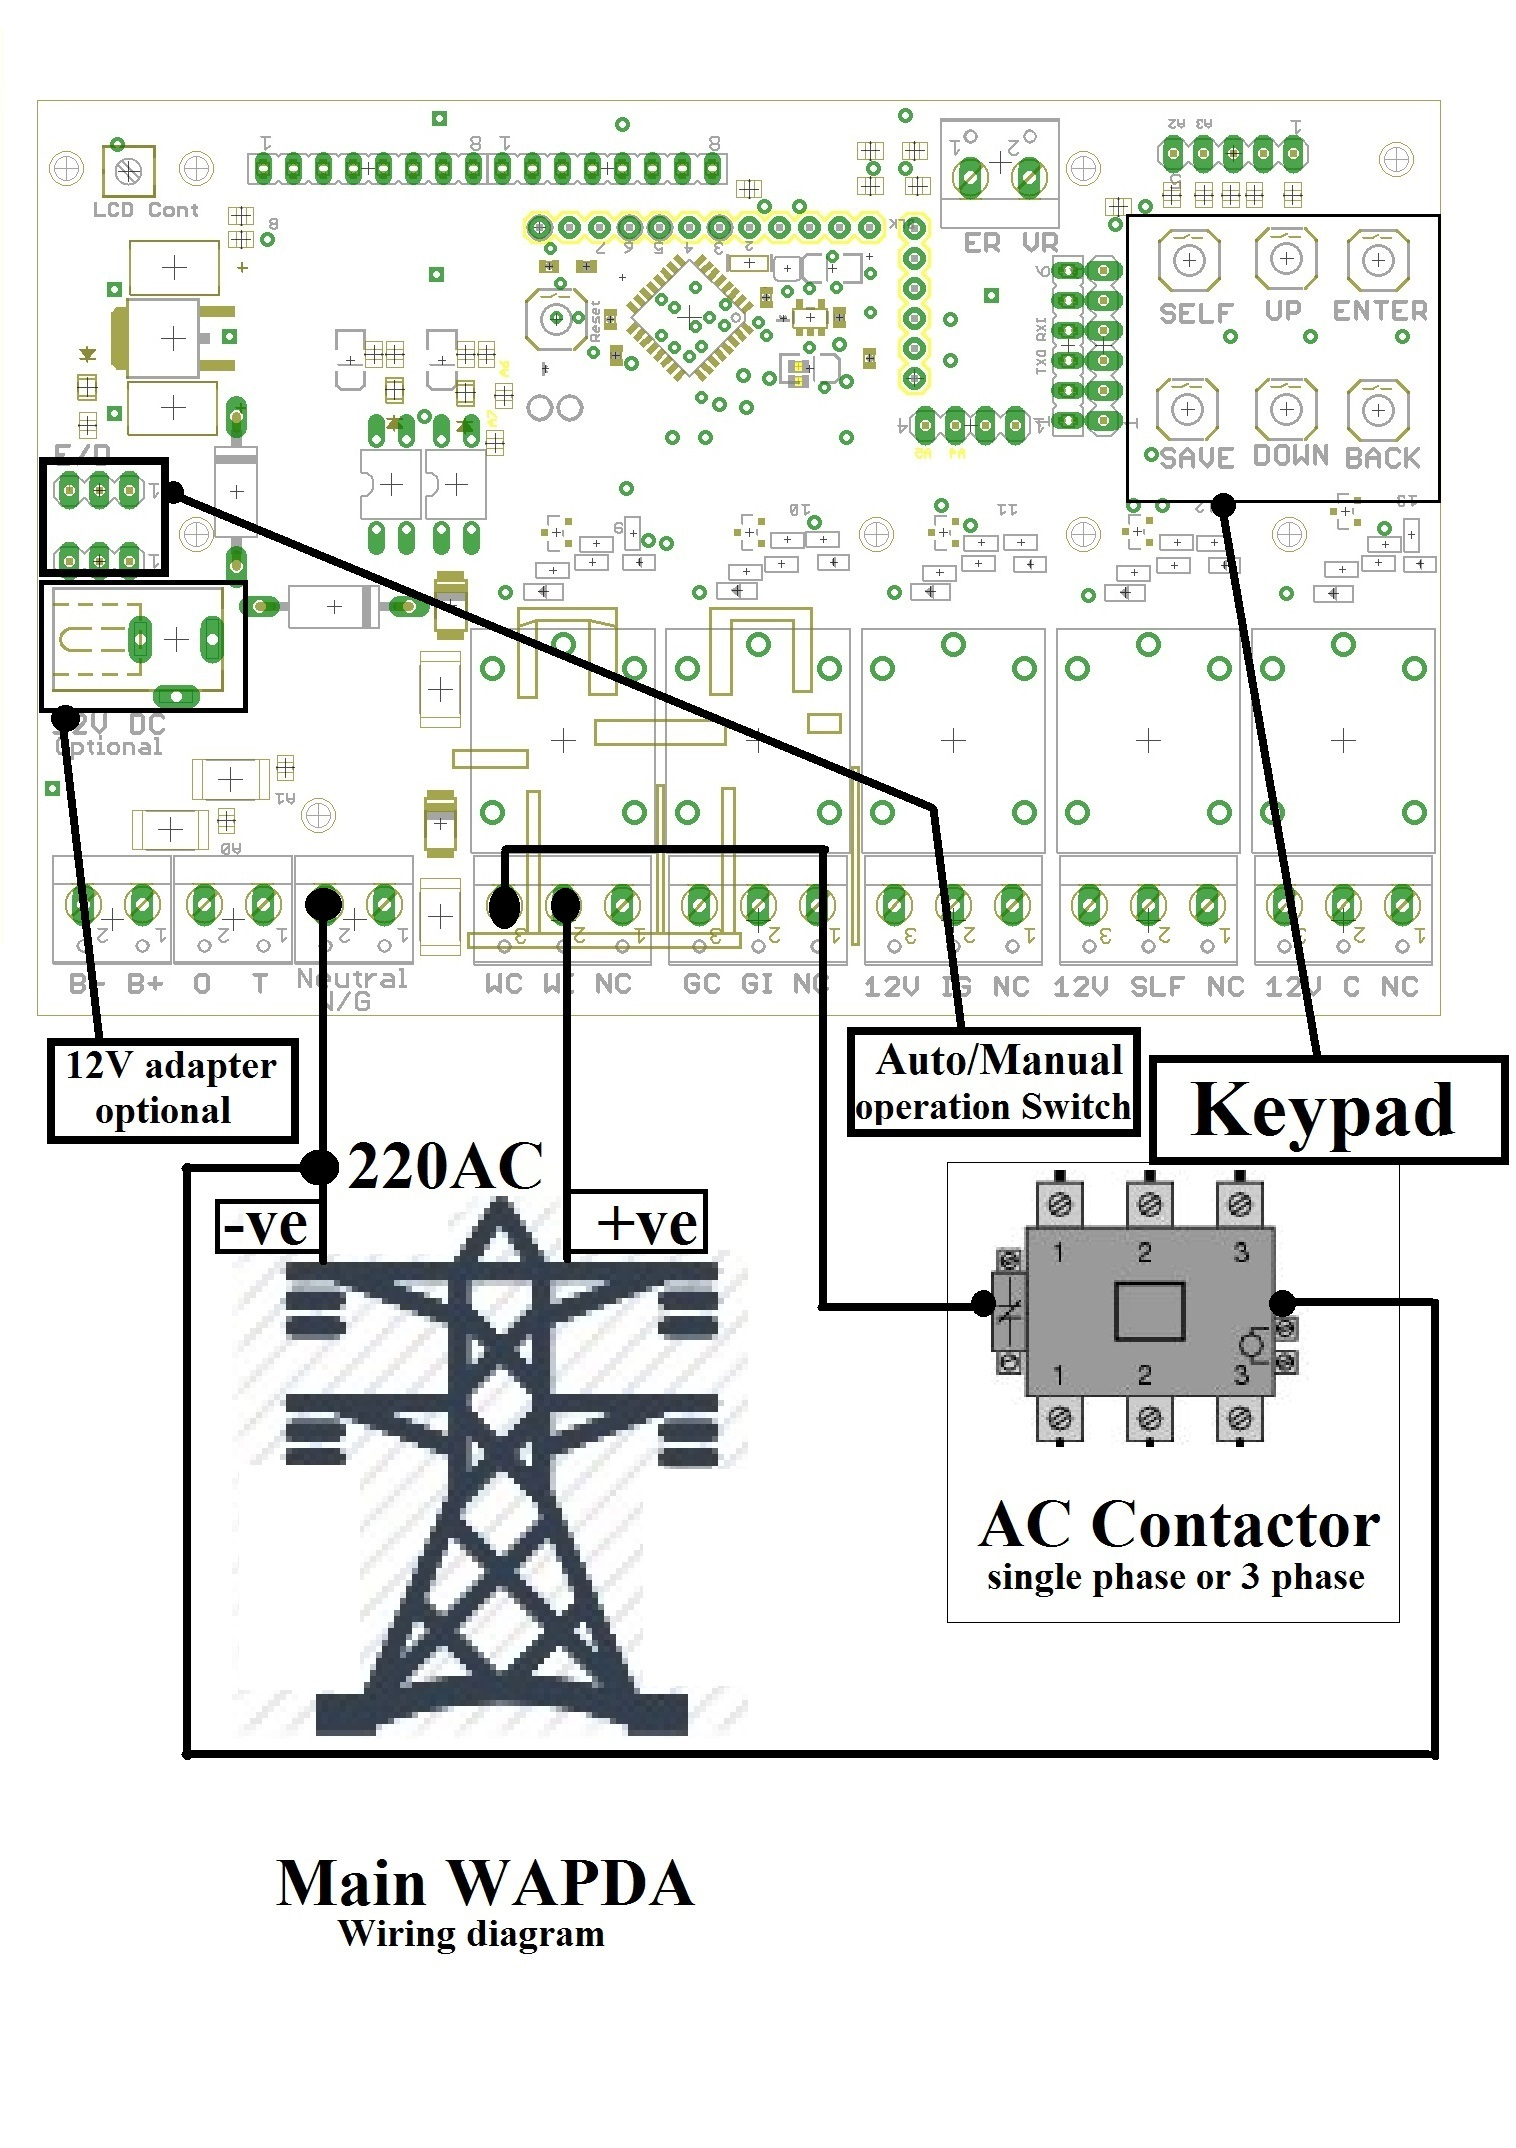 Ats Automatic Transfer Switch Mains Generator Controller Start Control Wiring Diagram App Image